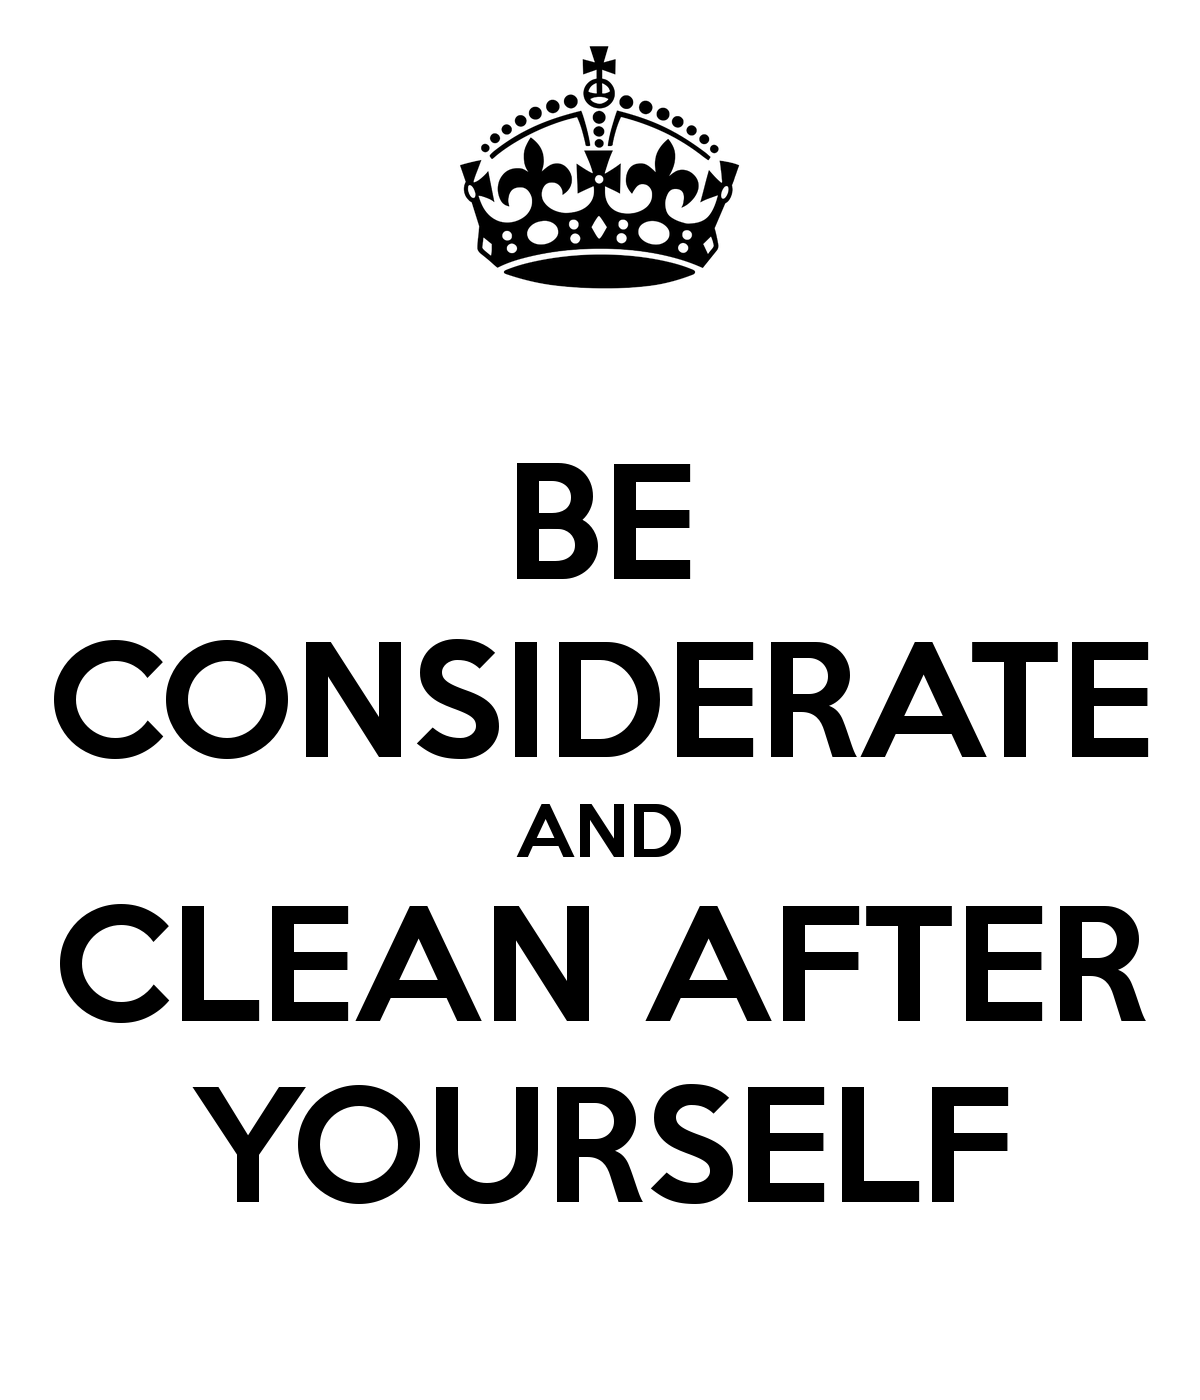 Quotes About Cleaning Clean Up After Yourself Quotes  Cleaning  Pinterest  Famous